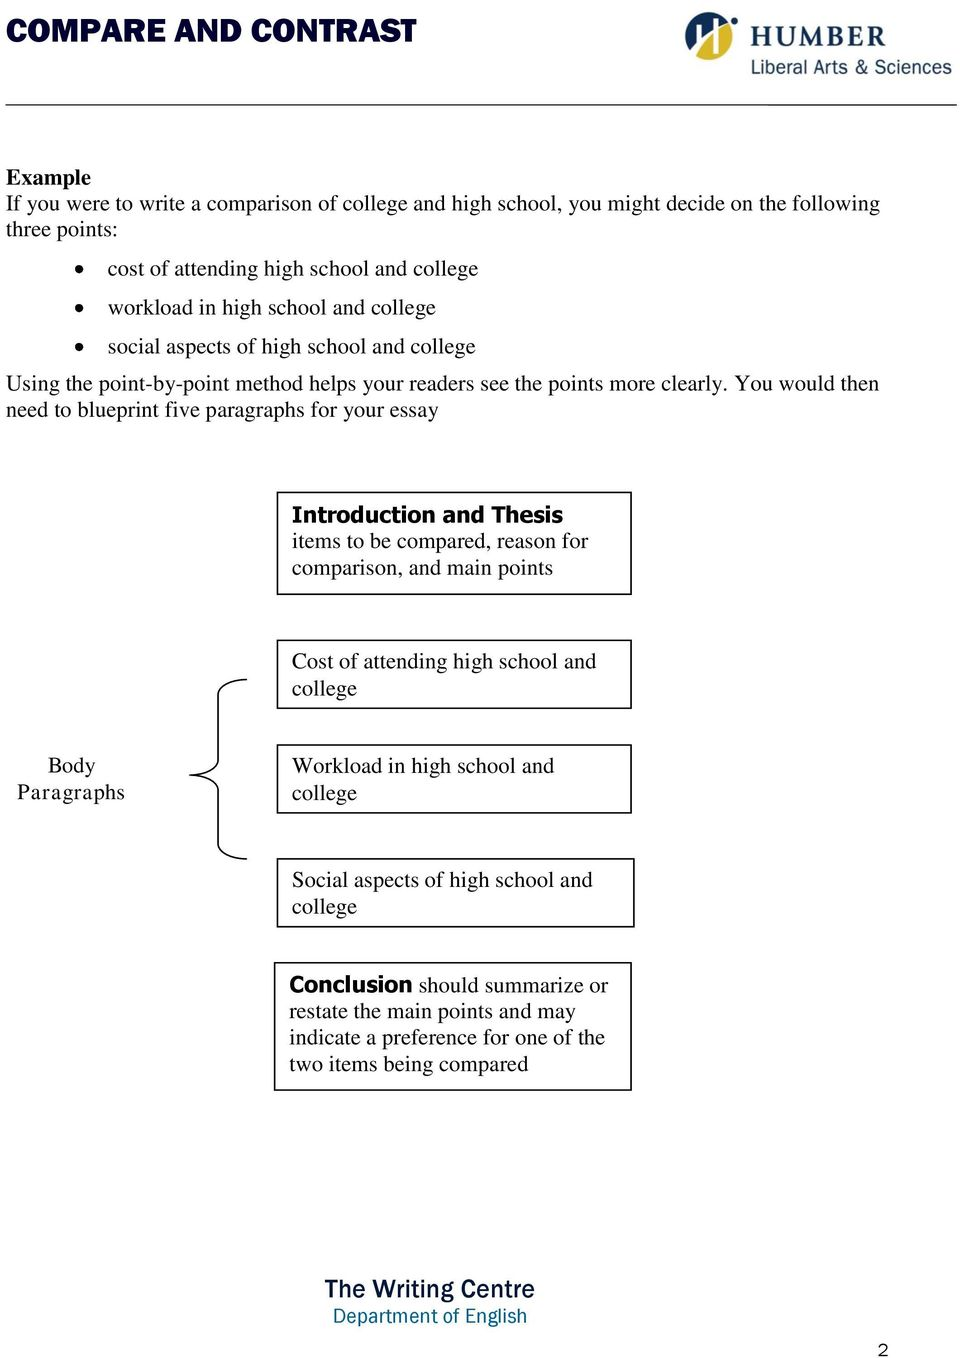 the point by point method   pdf you would then need to blueprint five paragraphs for your essay  introduction and thesis items to